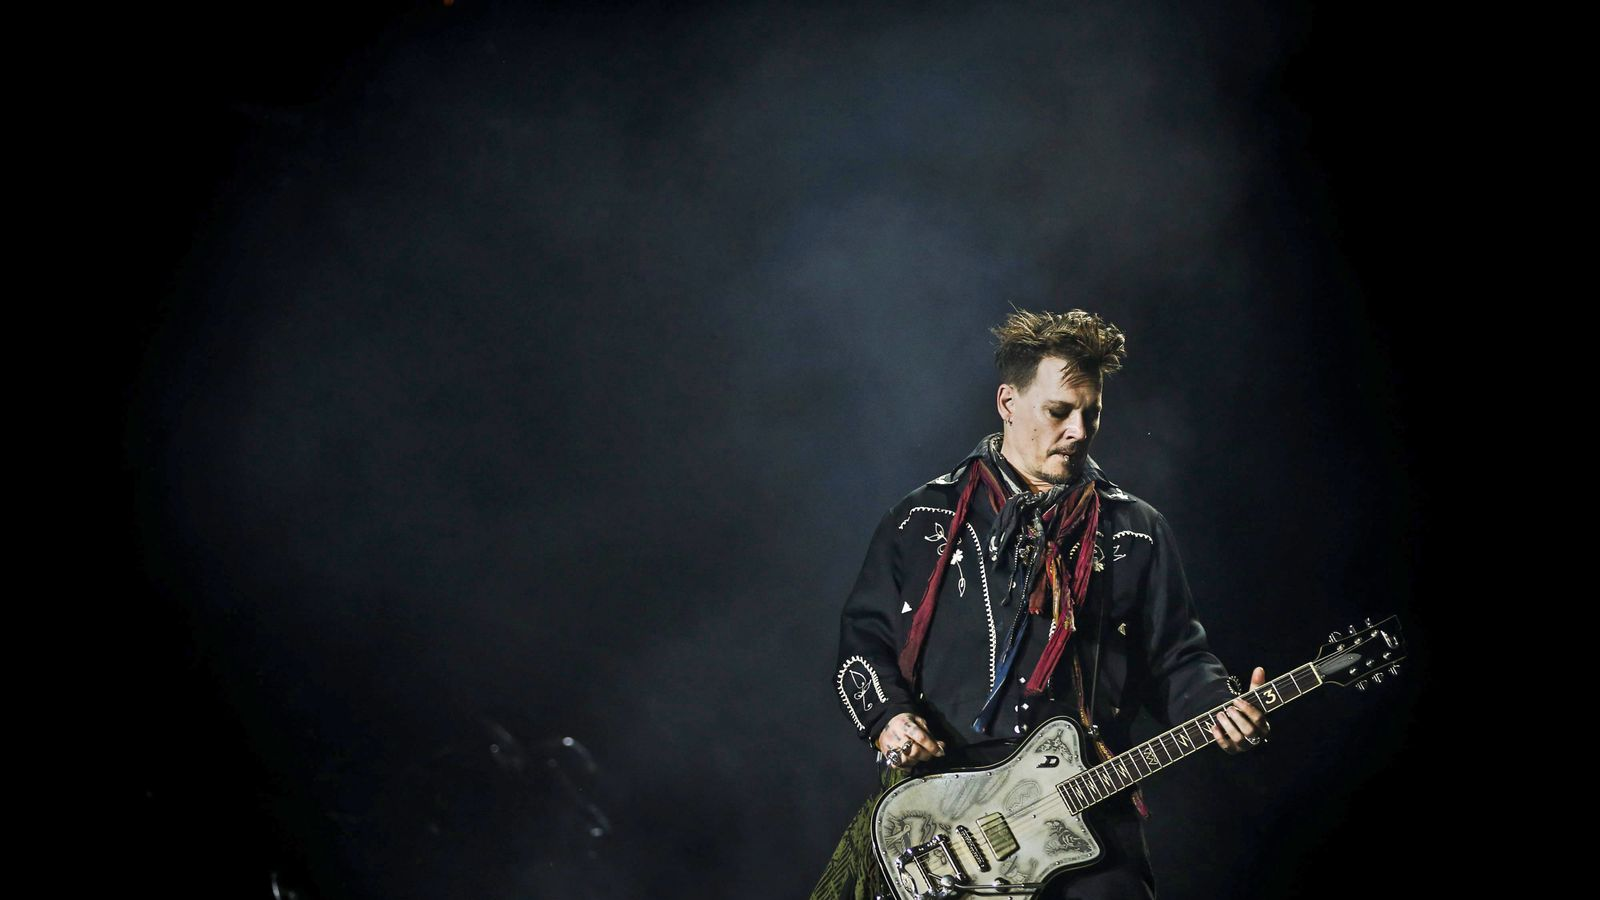 Johnny Depp to tour the UK with Hollywood Vampires